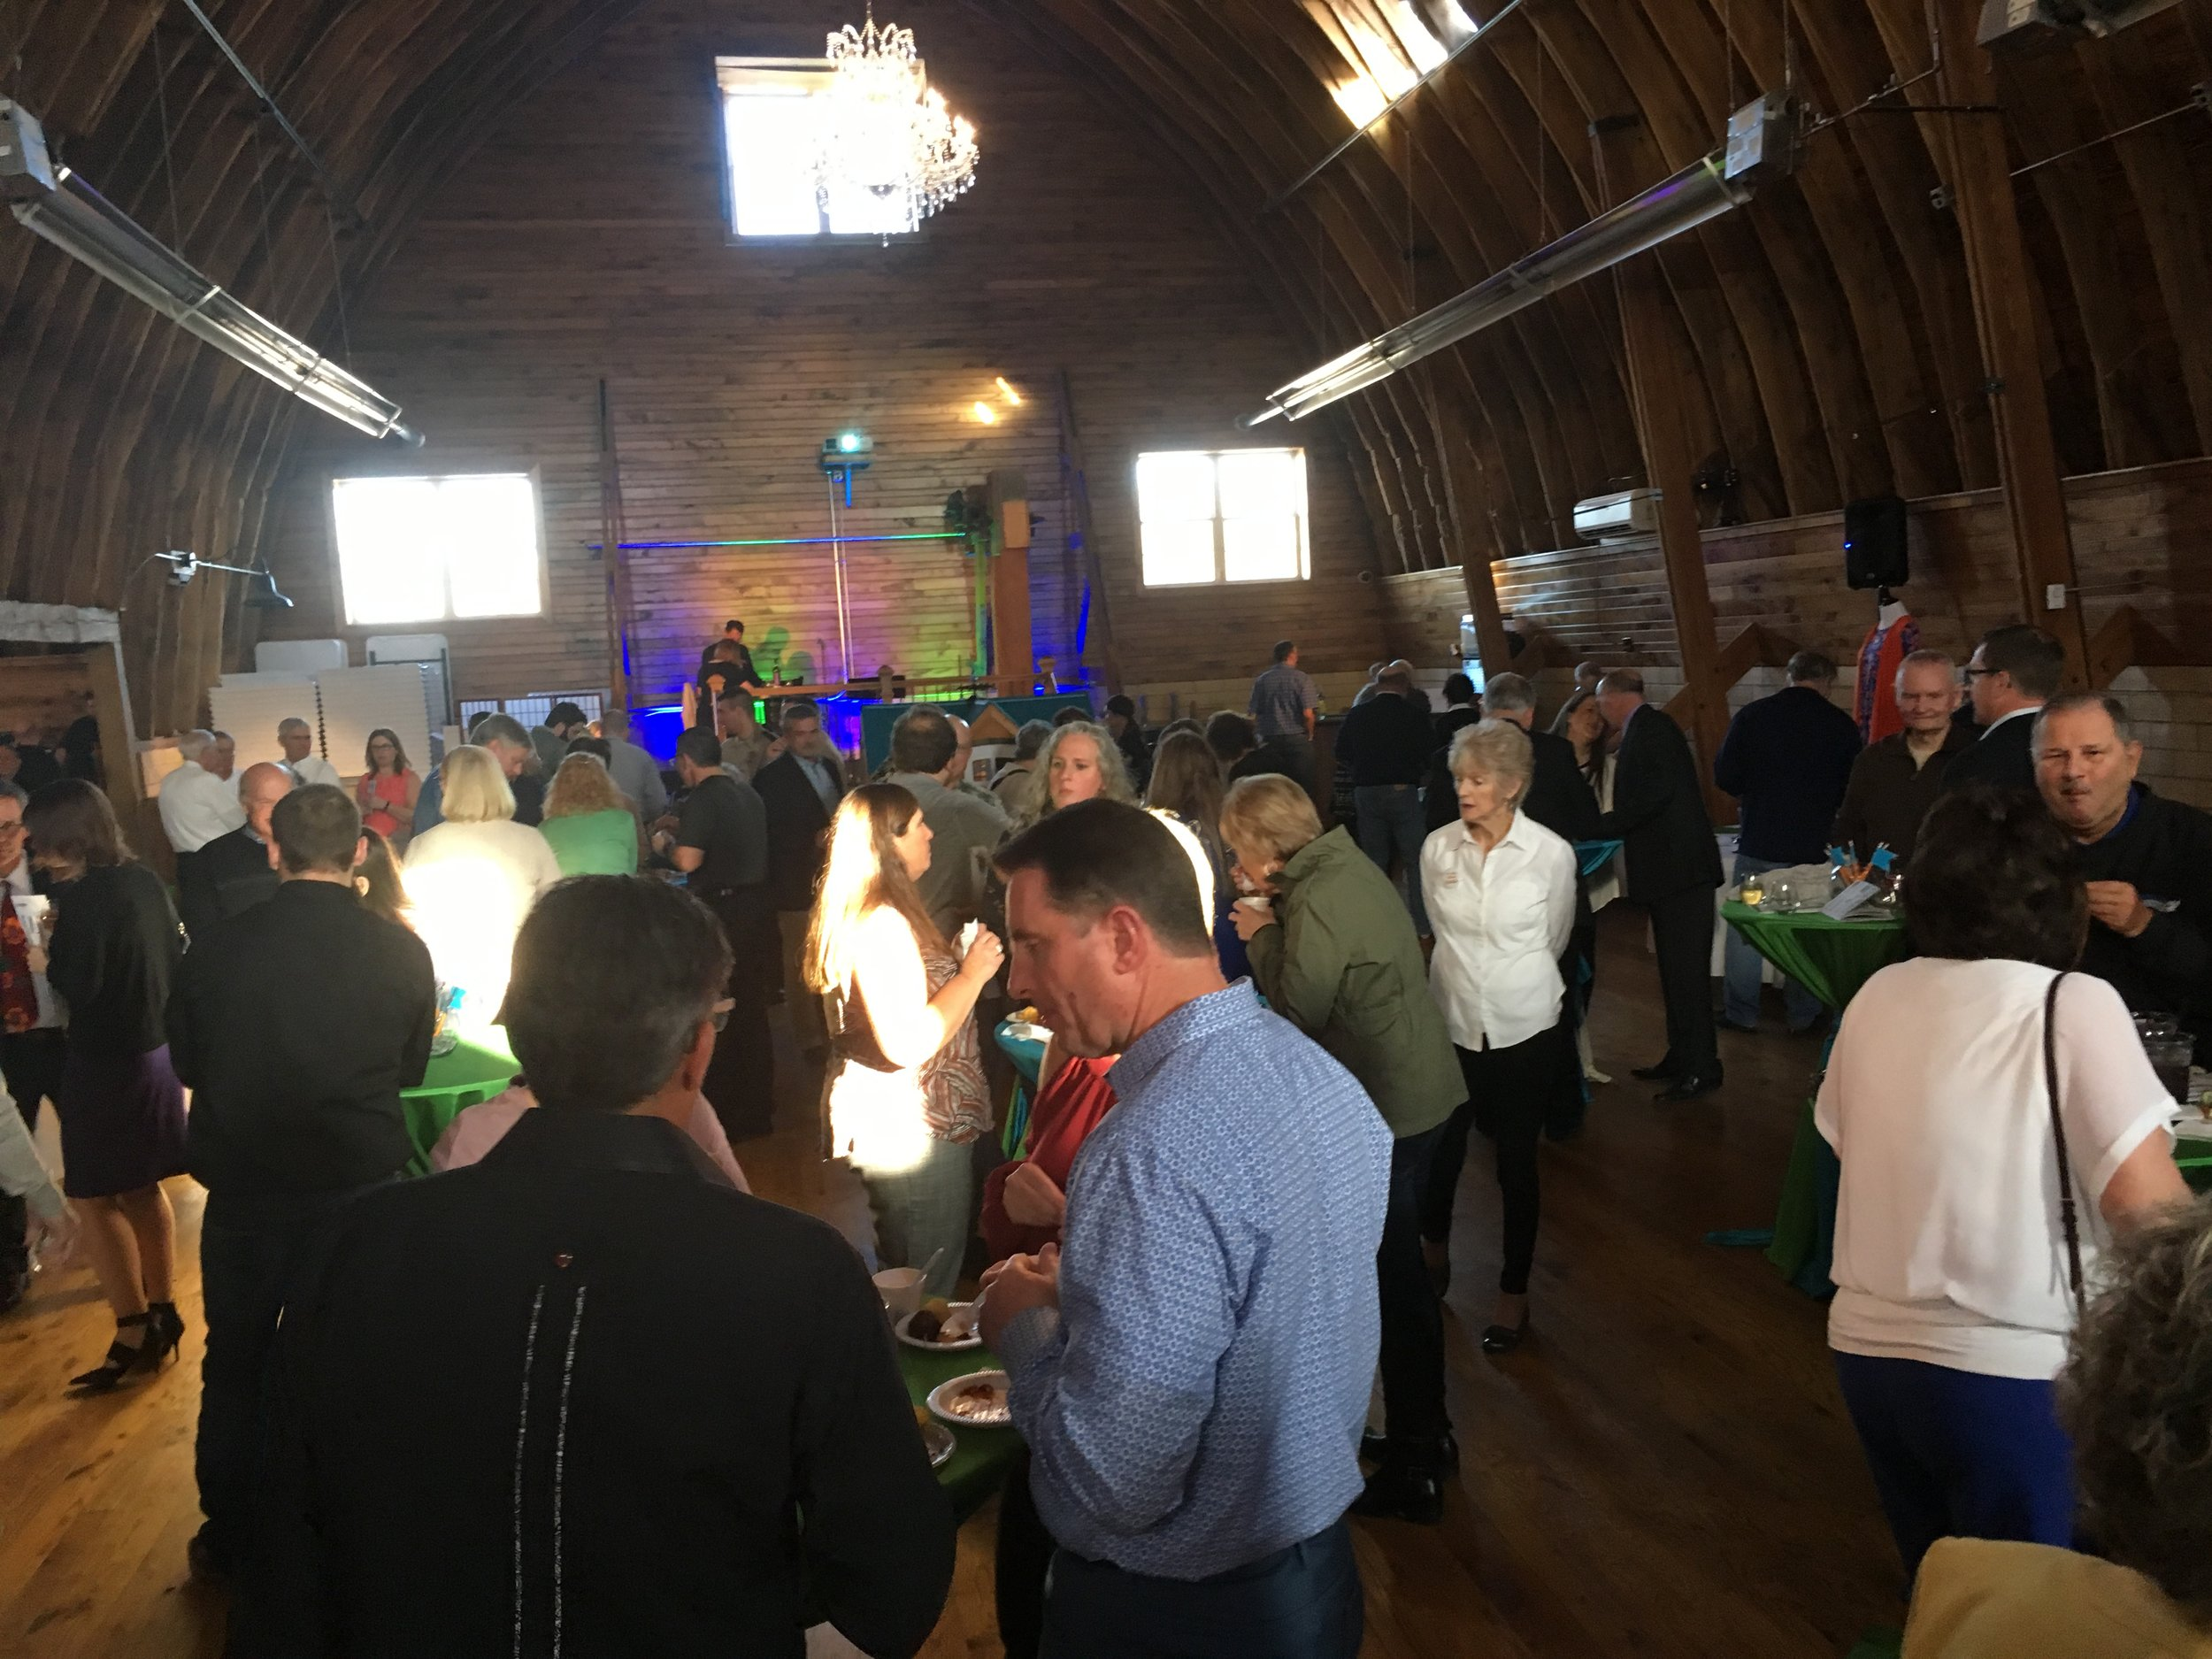 Northeastern Indiana CASA's annual fundraiser event was held April 20th at Sylvan Cellars Event Center featuring tasting stations, drinks and silent auction items. The event raised $52,500 for the nonprofit.